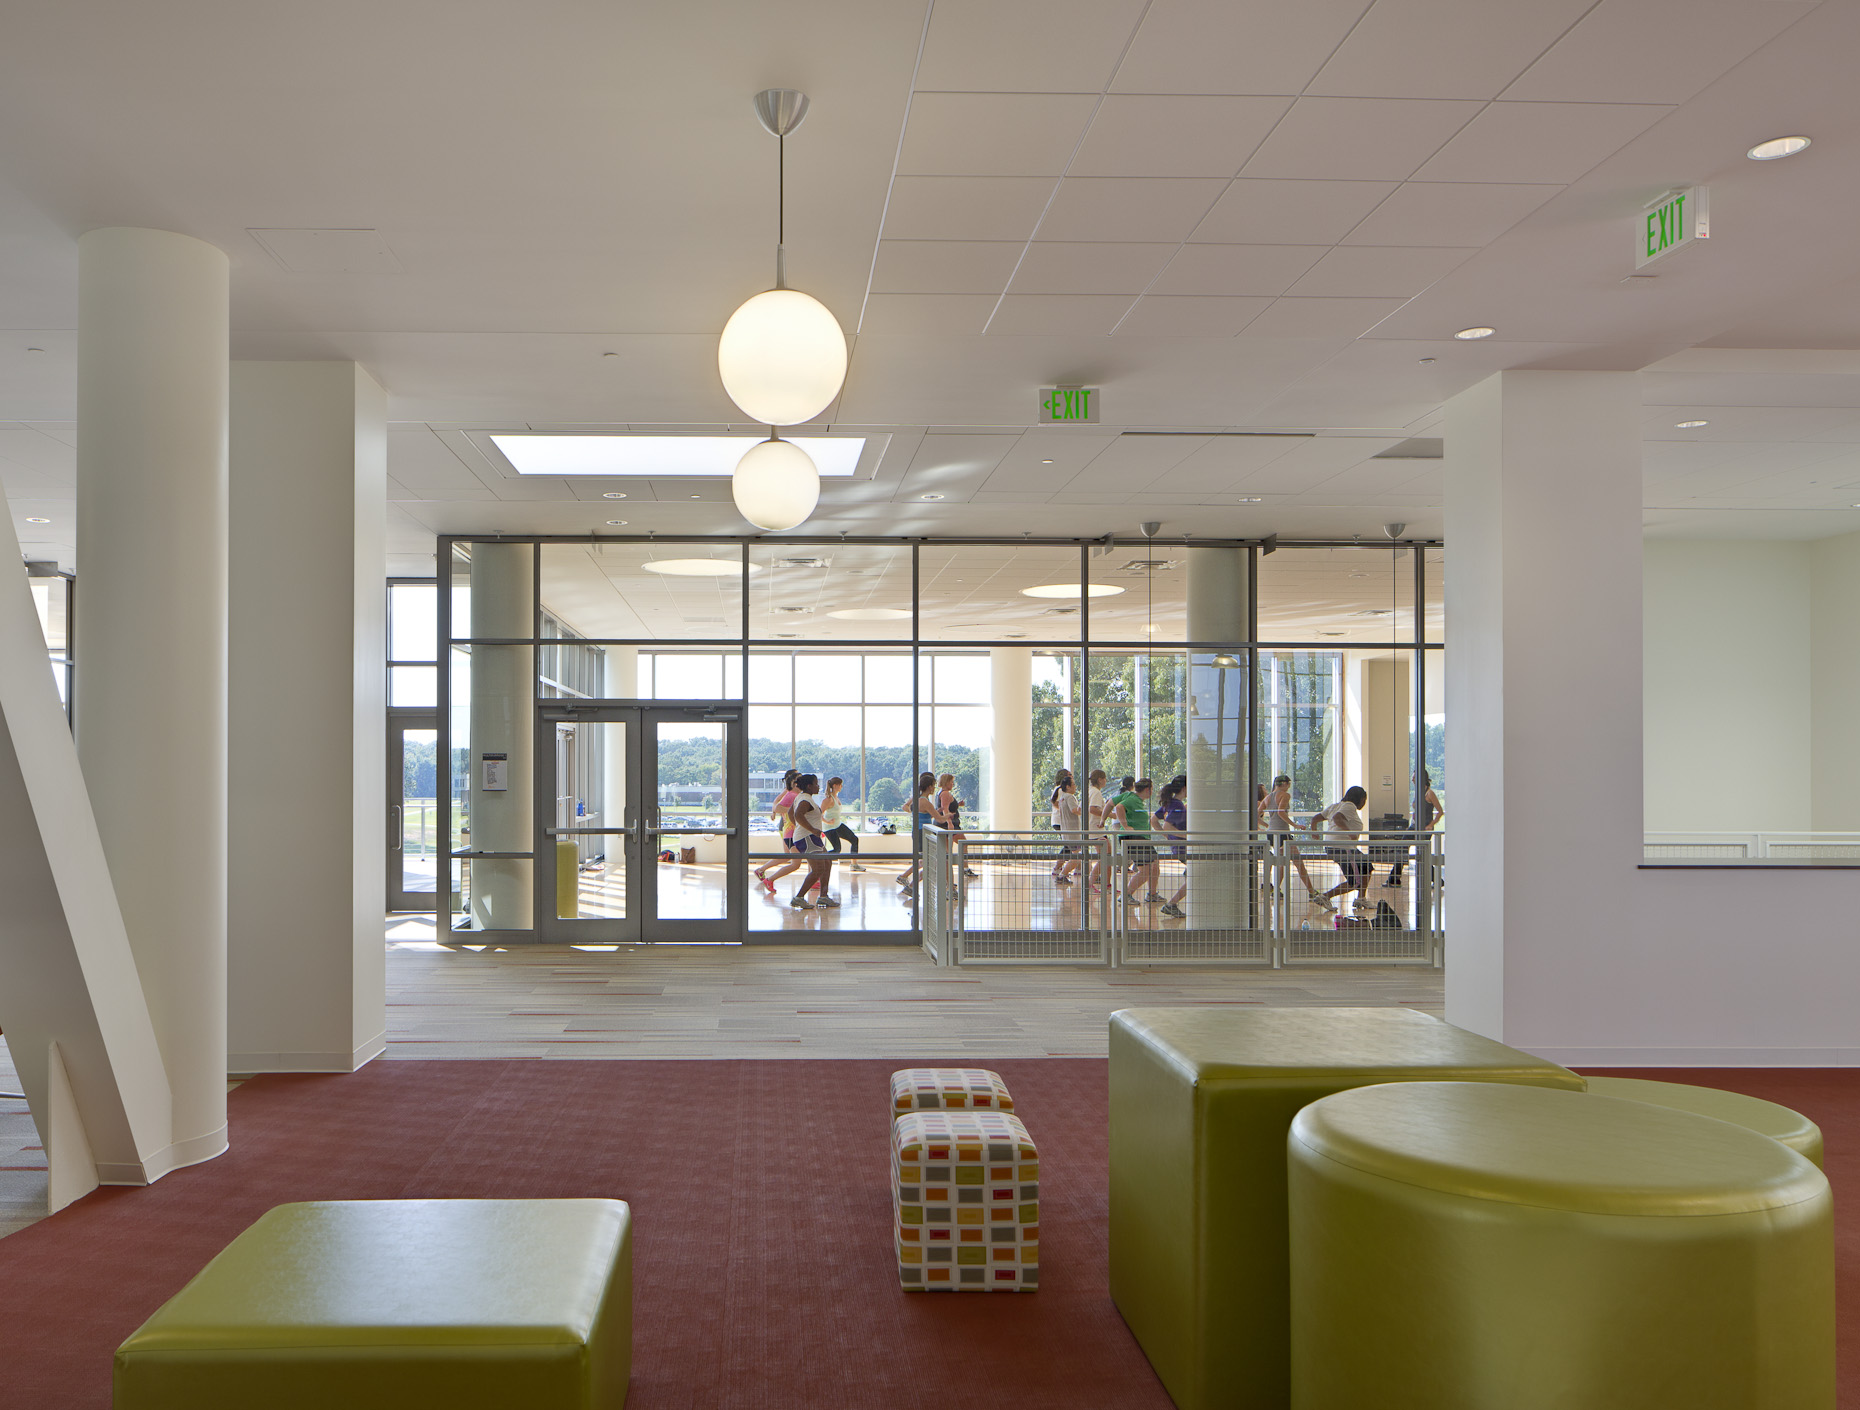 Auburn University Montgomery (AUM) Wellness Center | 360 Architecture